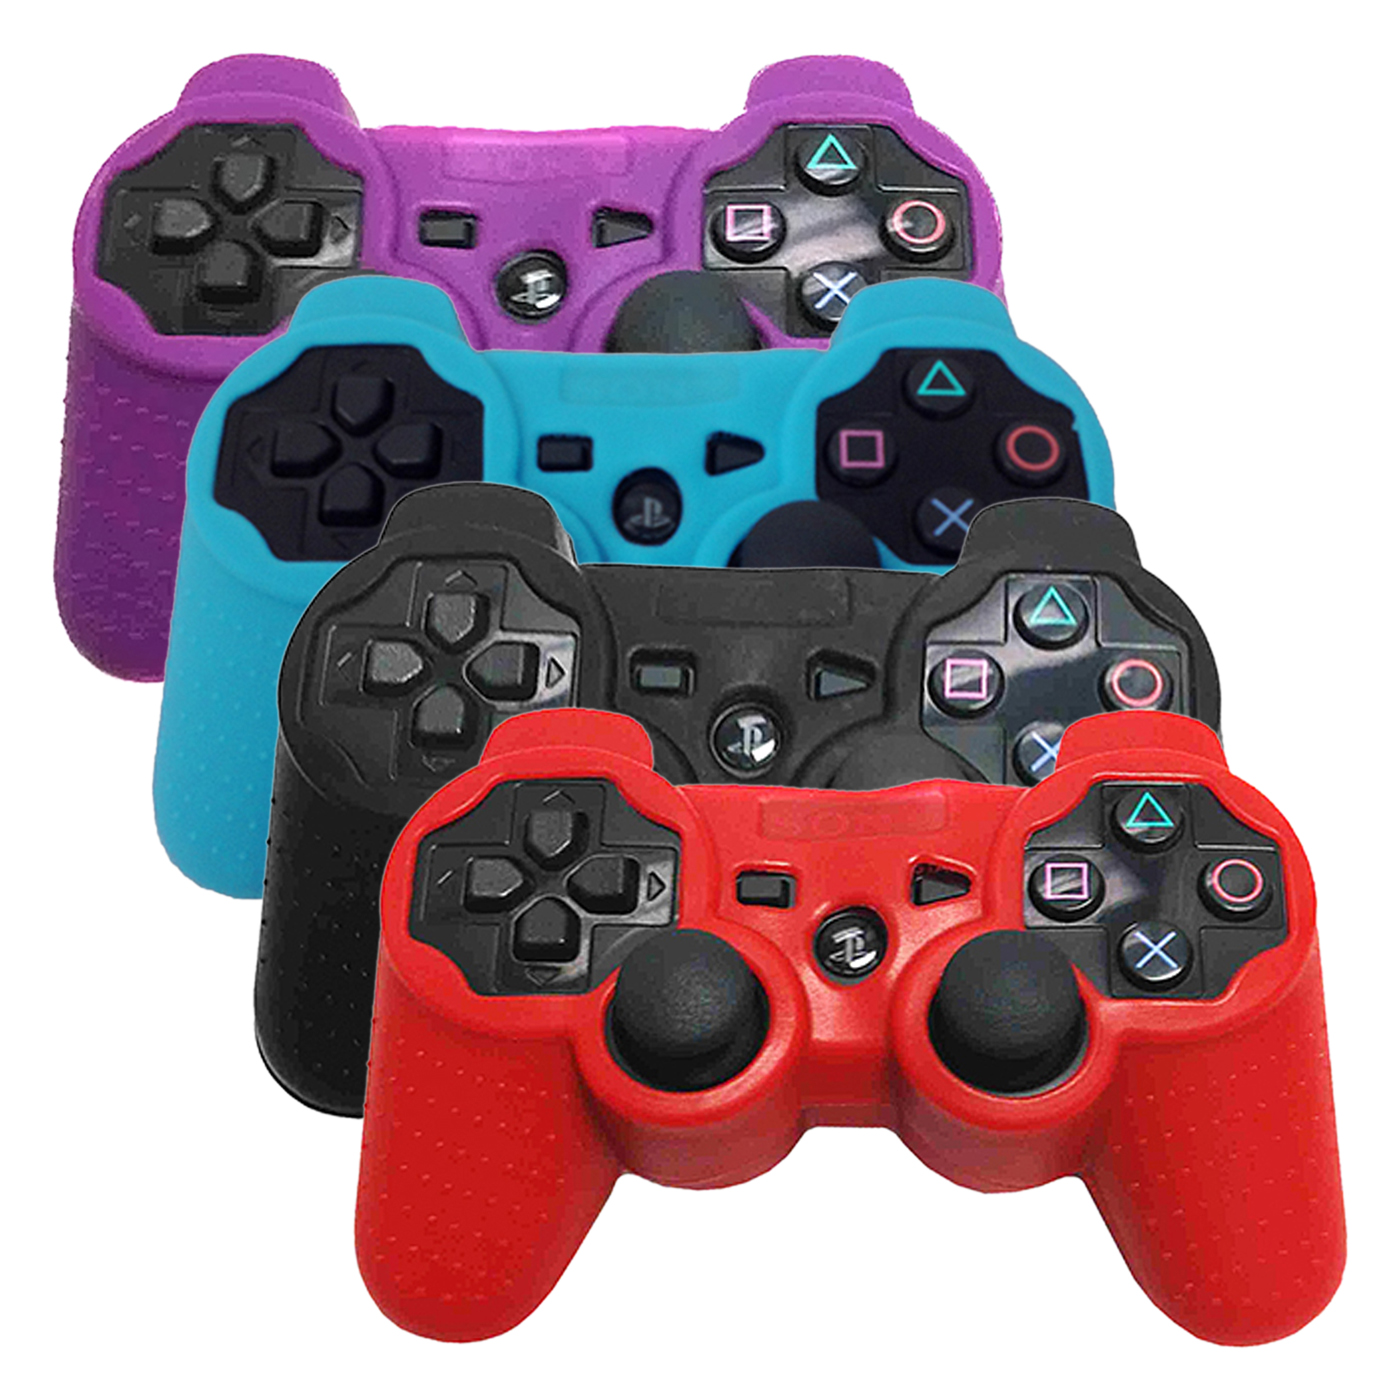 HDE PS3 Controller Skin 4 Pack Combo Silicone Rubber Protective Grip for Sony Playstation 3 Wireless Dualshock Game Controllers (Purple, Blue, Black, Red)